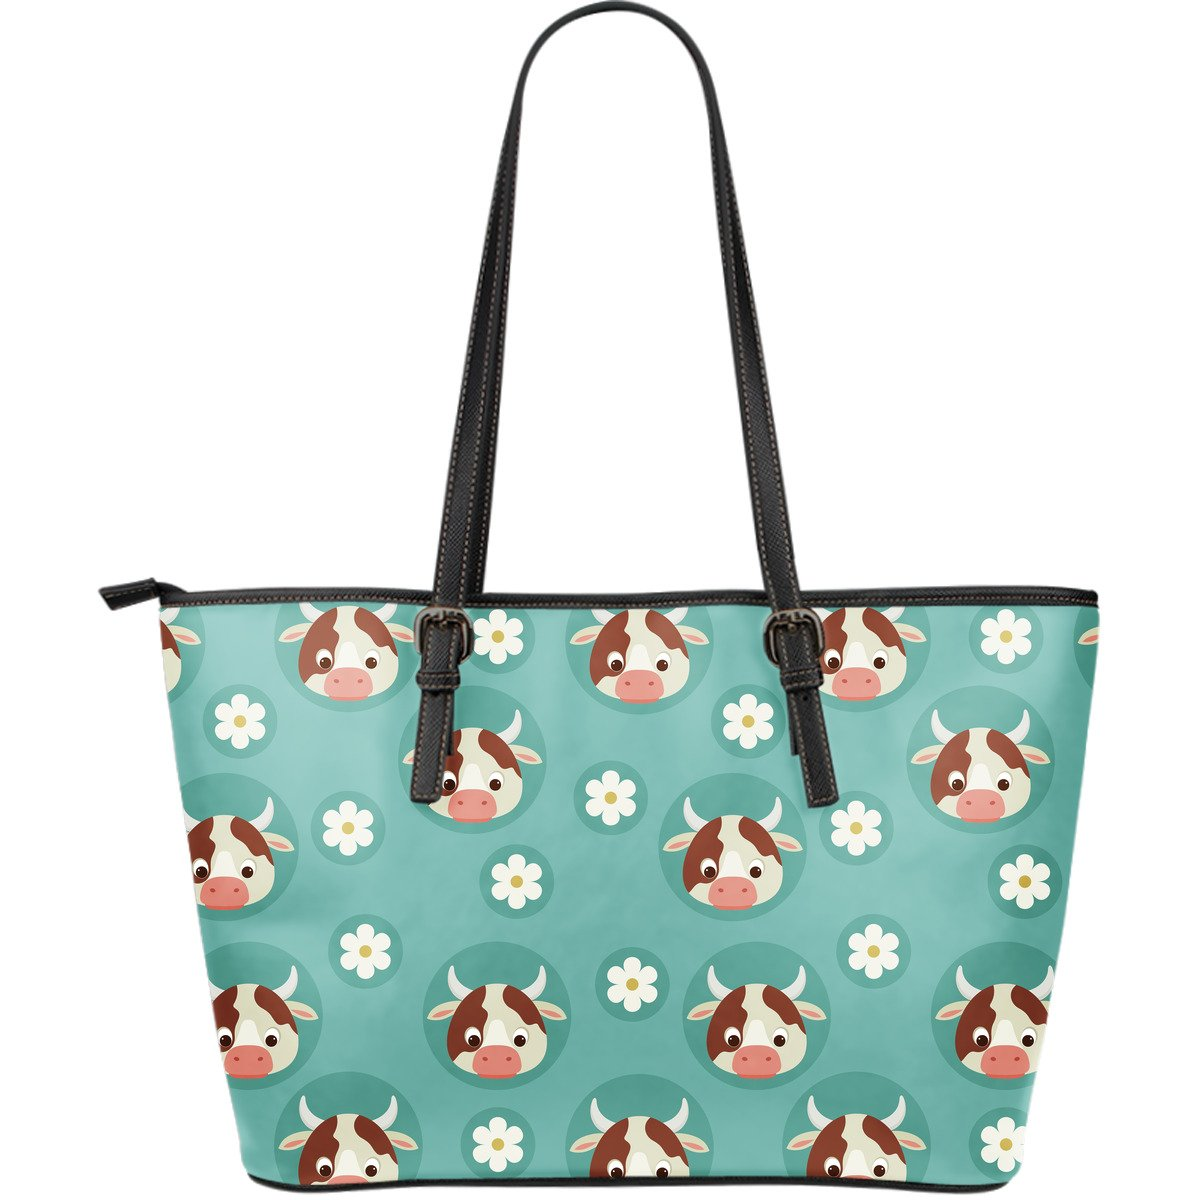 Cute Cow And Daisy Flower Pattern Print Leather Tote Bag GearFrost